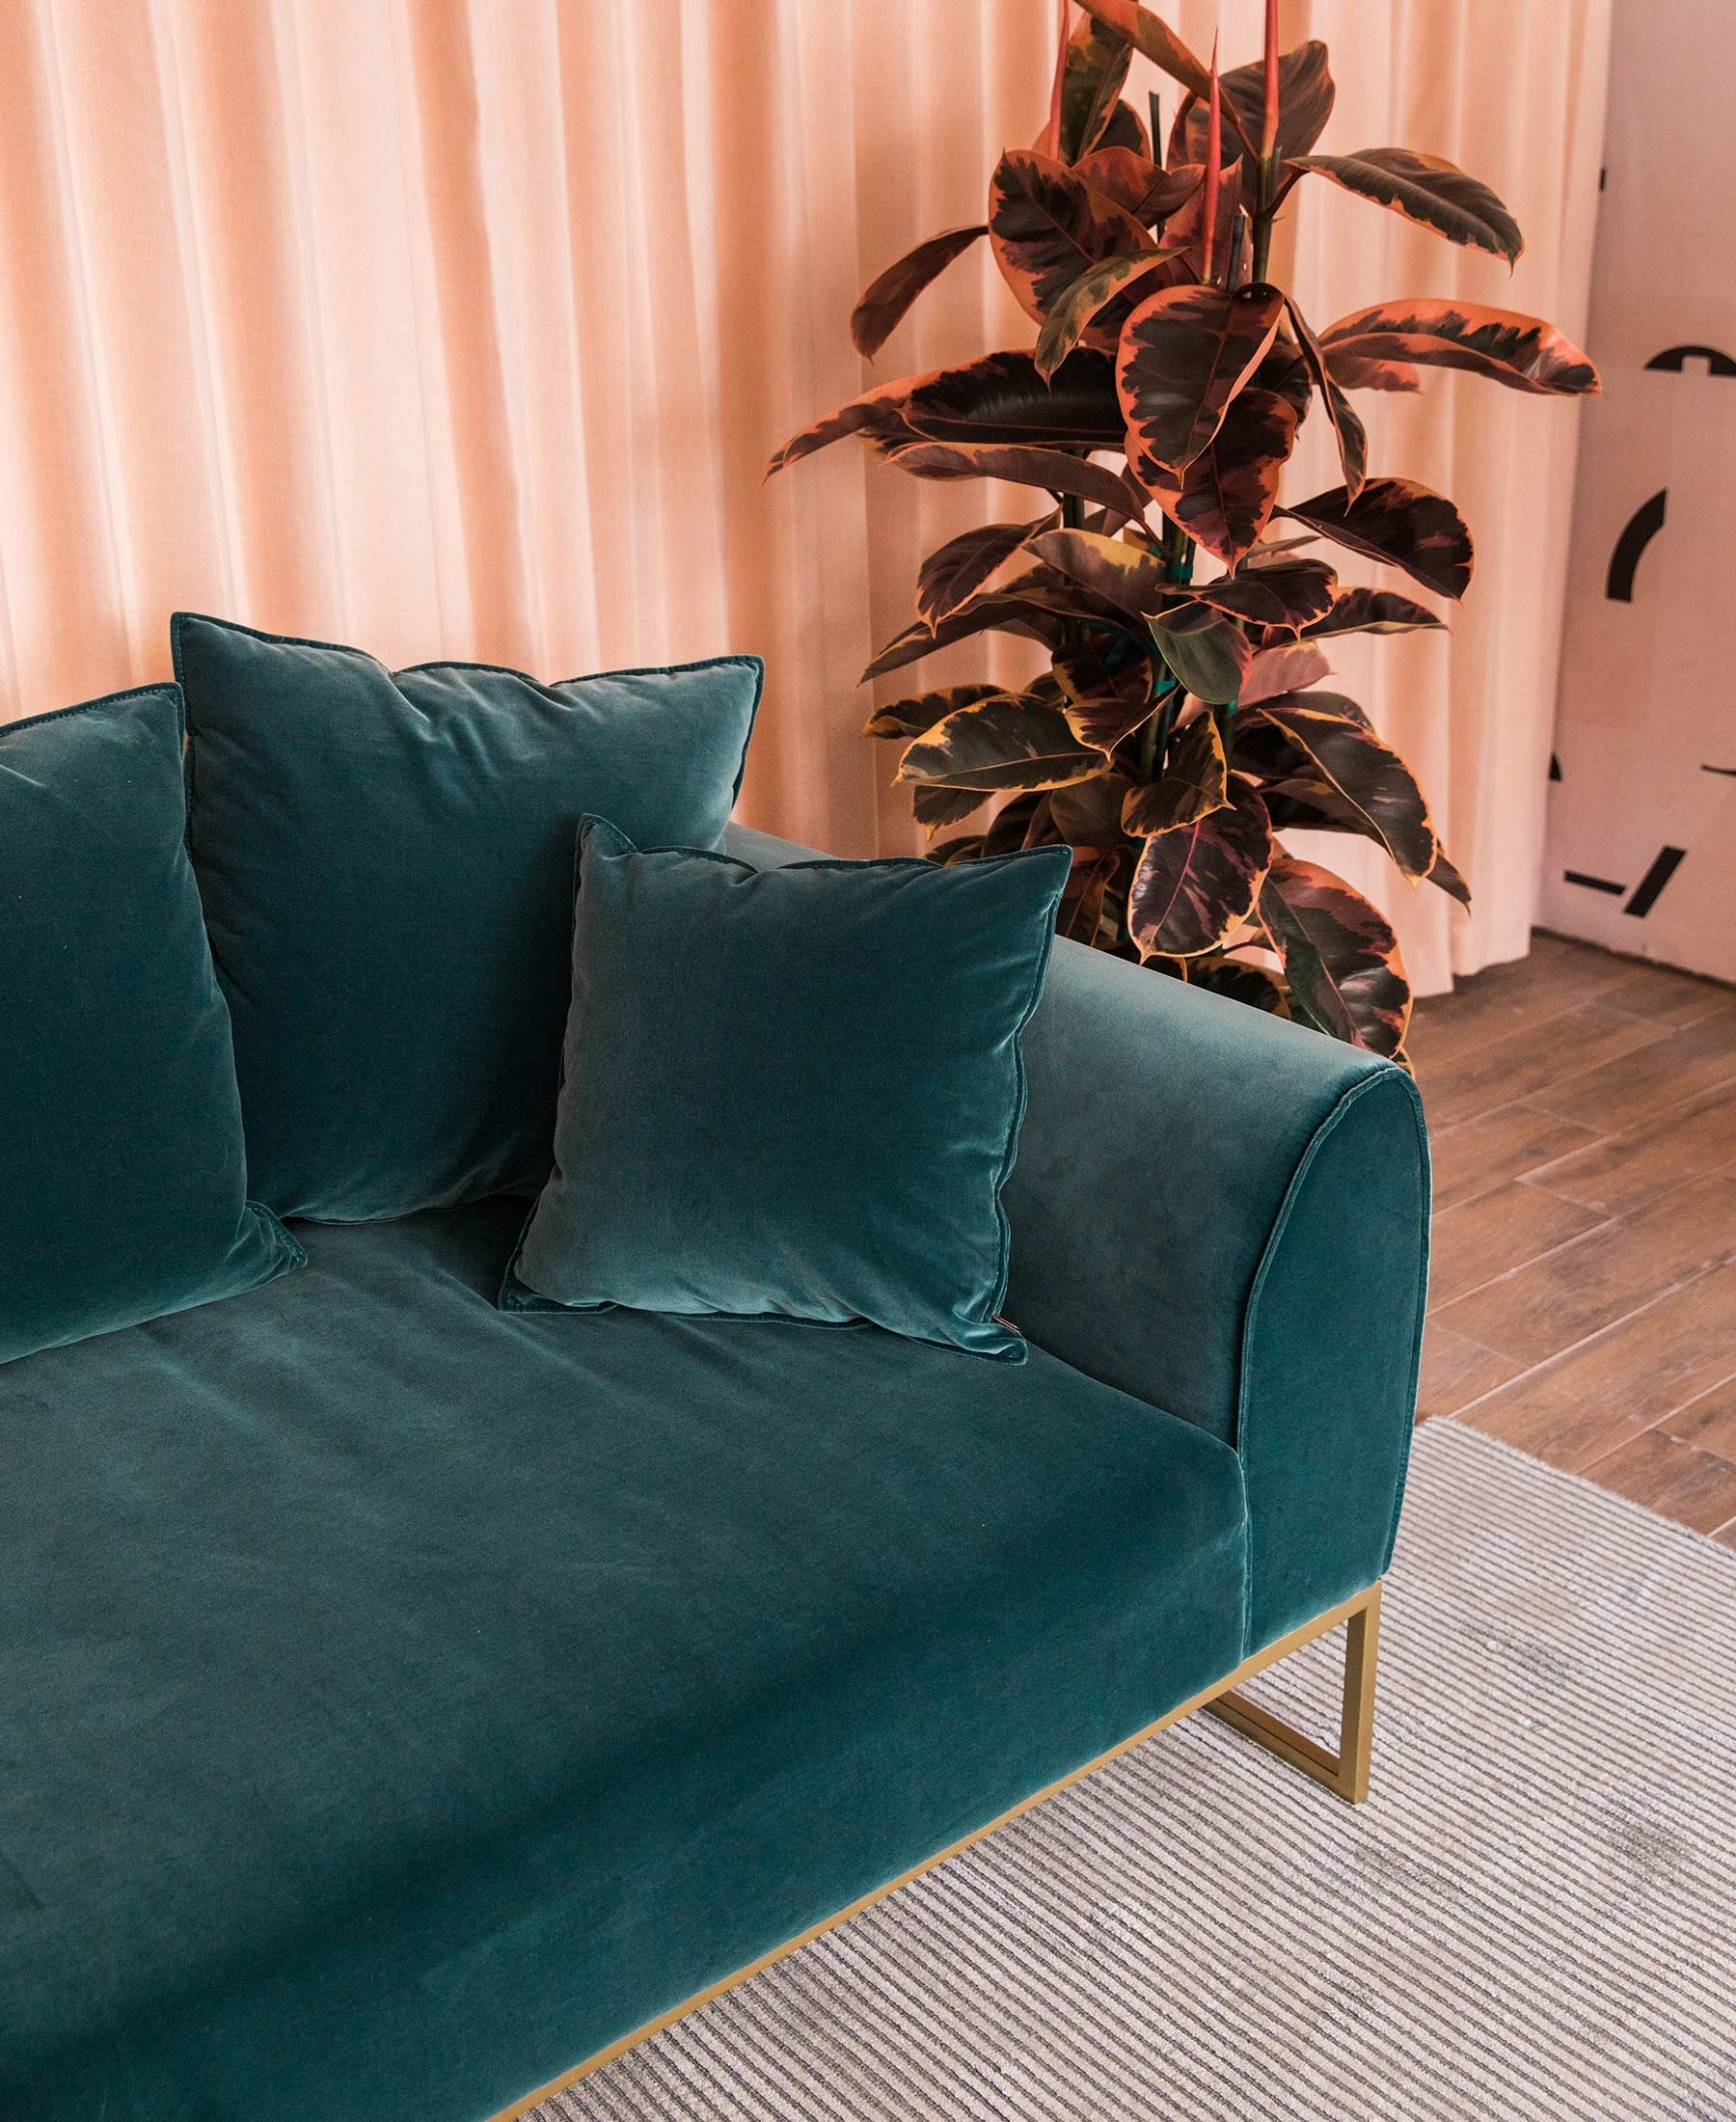 How To Choose A Sofa Color For Your Living Room | Articulate 20+ Mink Coloured Living Room Inspirations